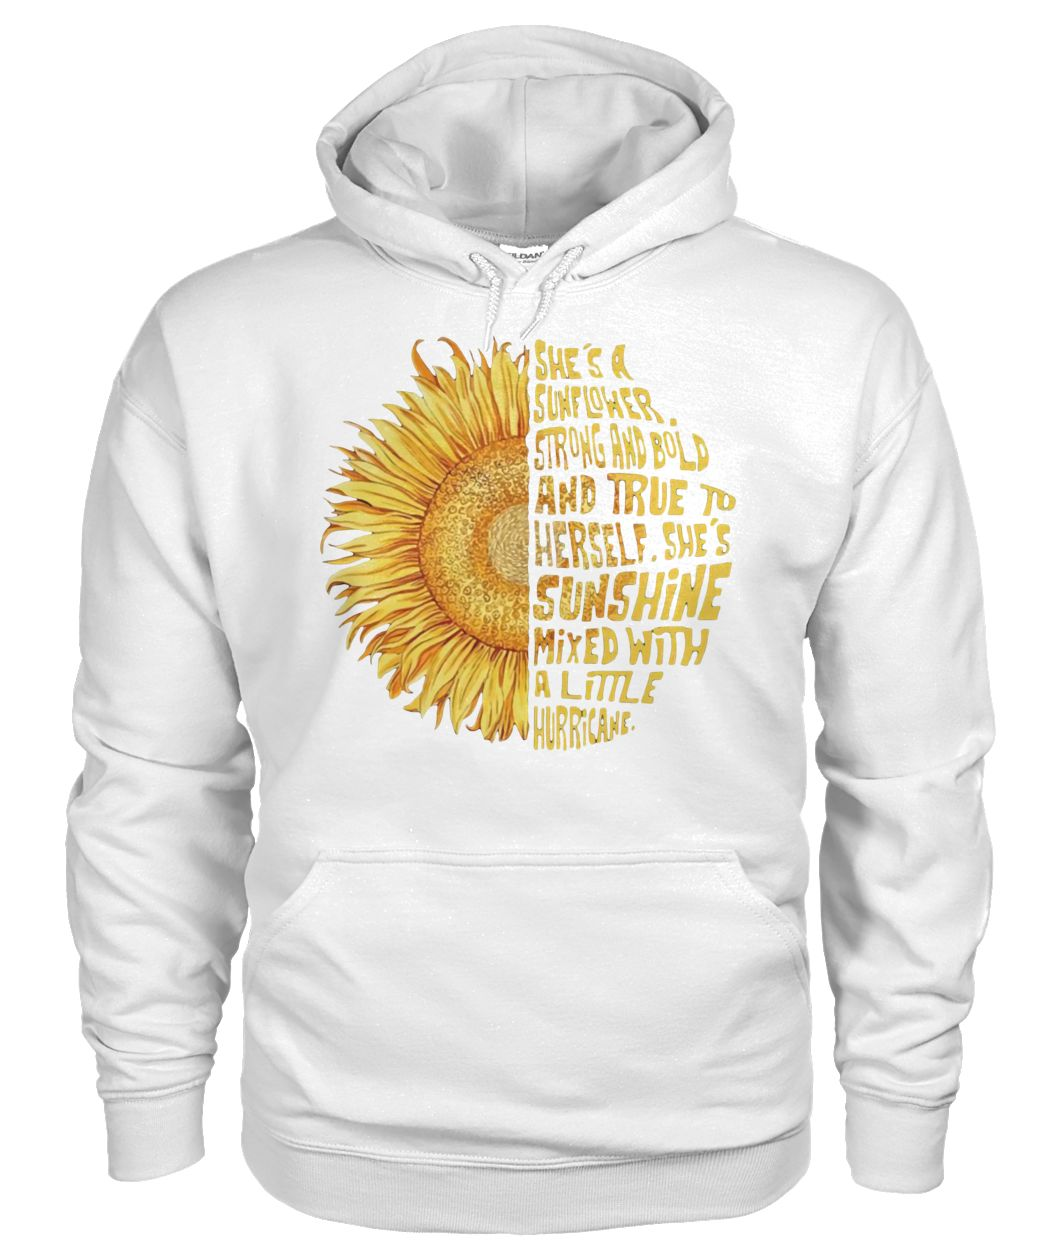 She's a sunflower strong and bold and true to herself she's sunshine mixed gildan hoodie